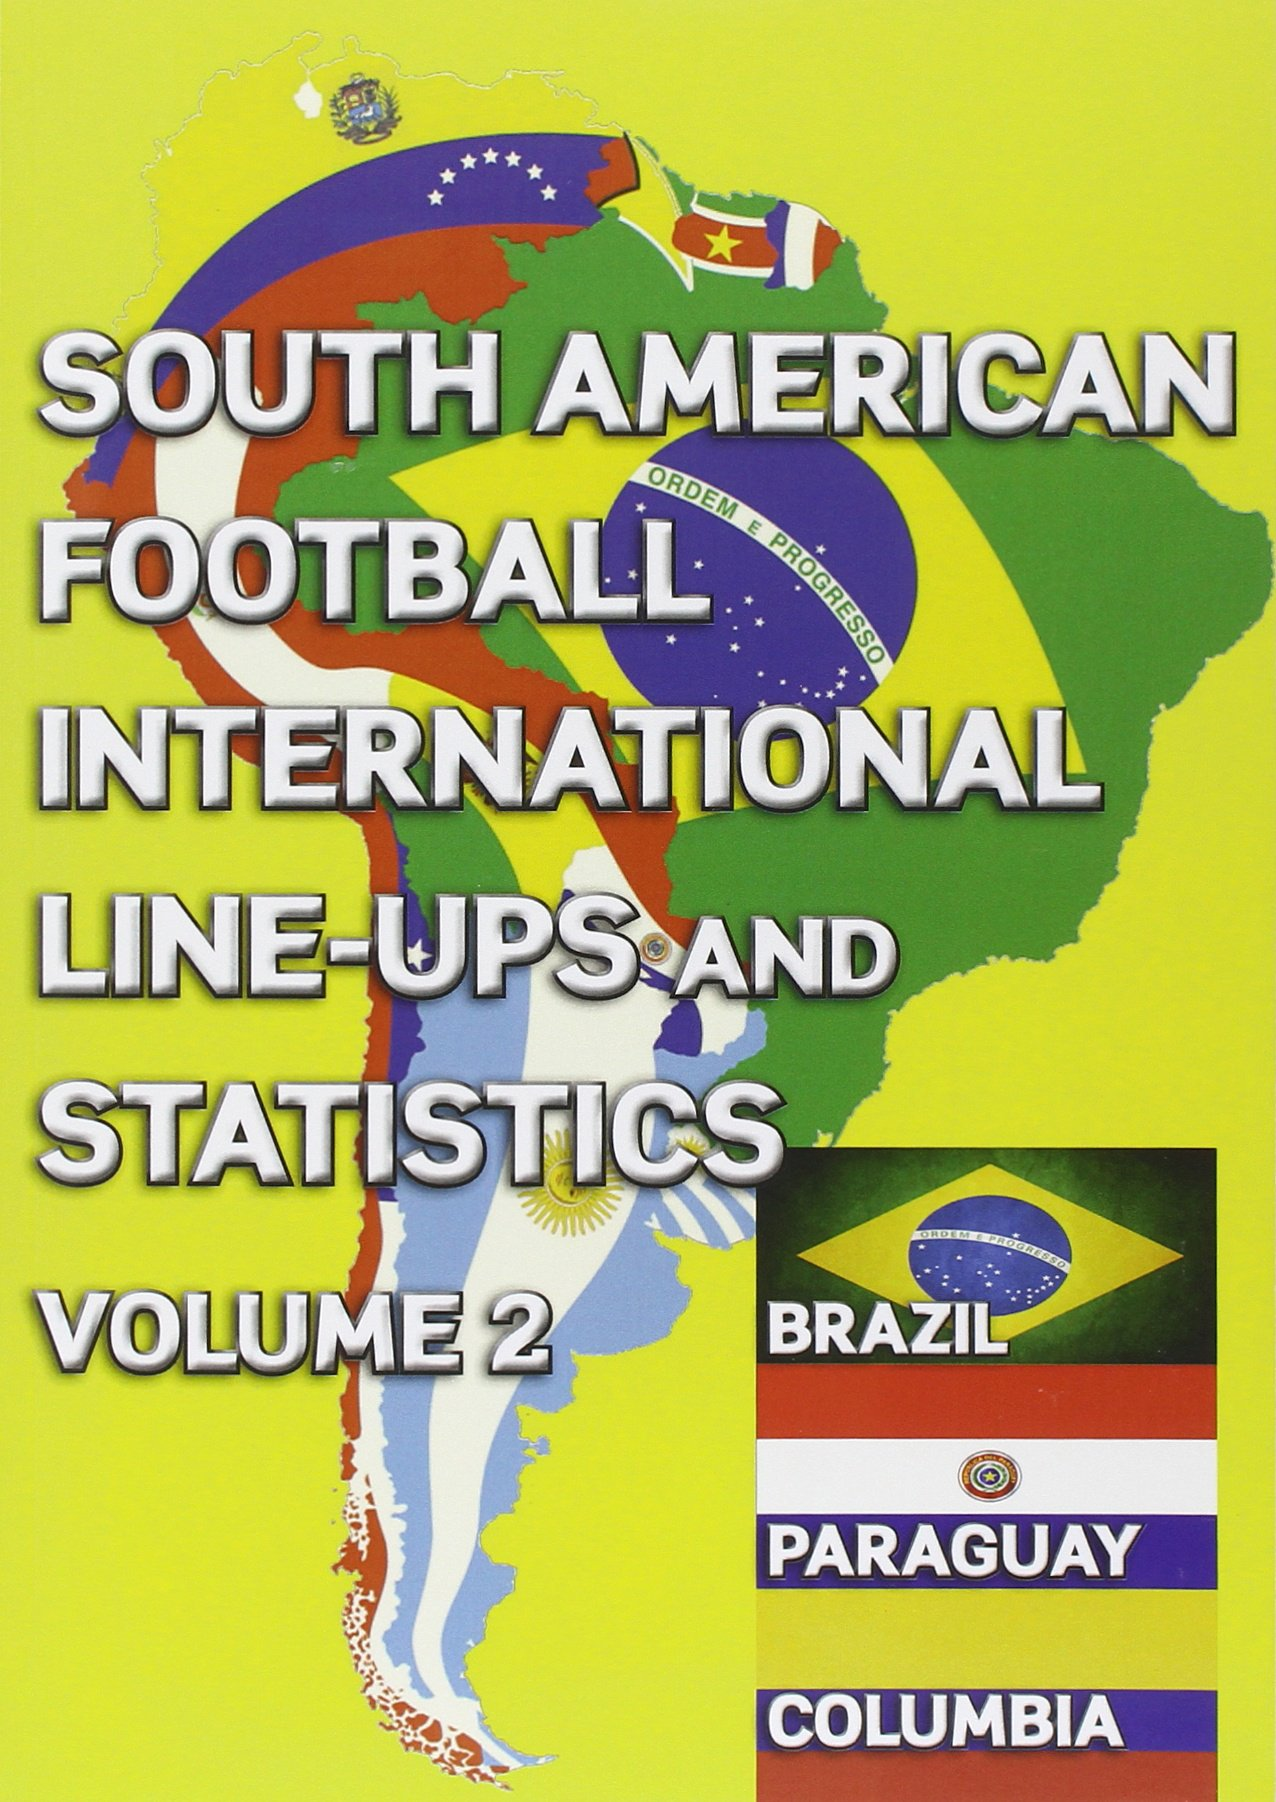 South American Football International Line-ups and Statistics - Volume 2: Brazil, Colombia and Paraguay